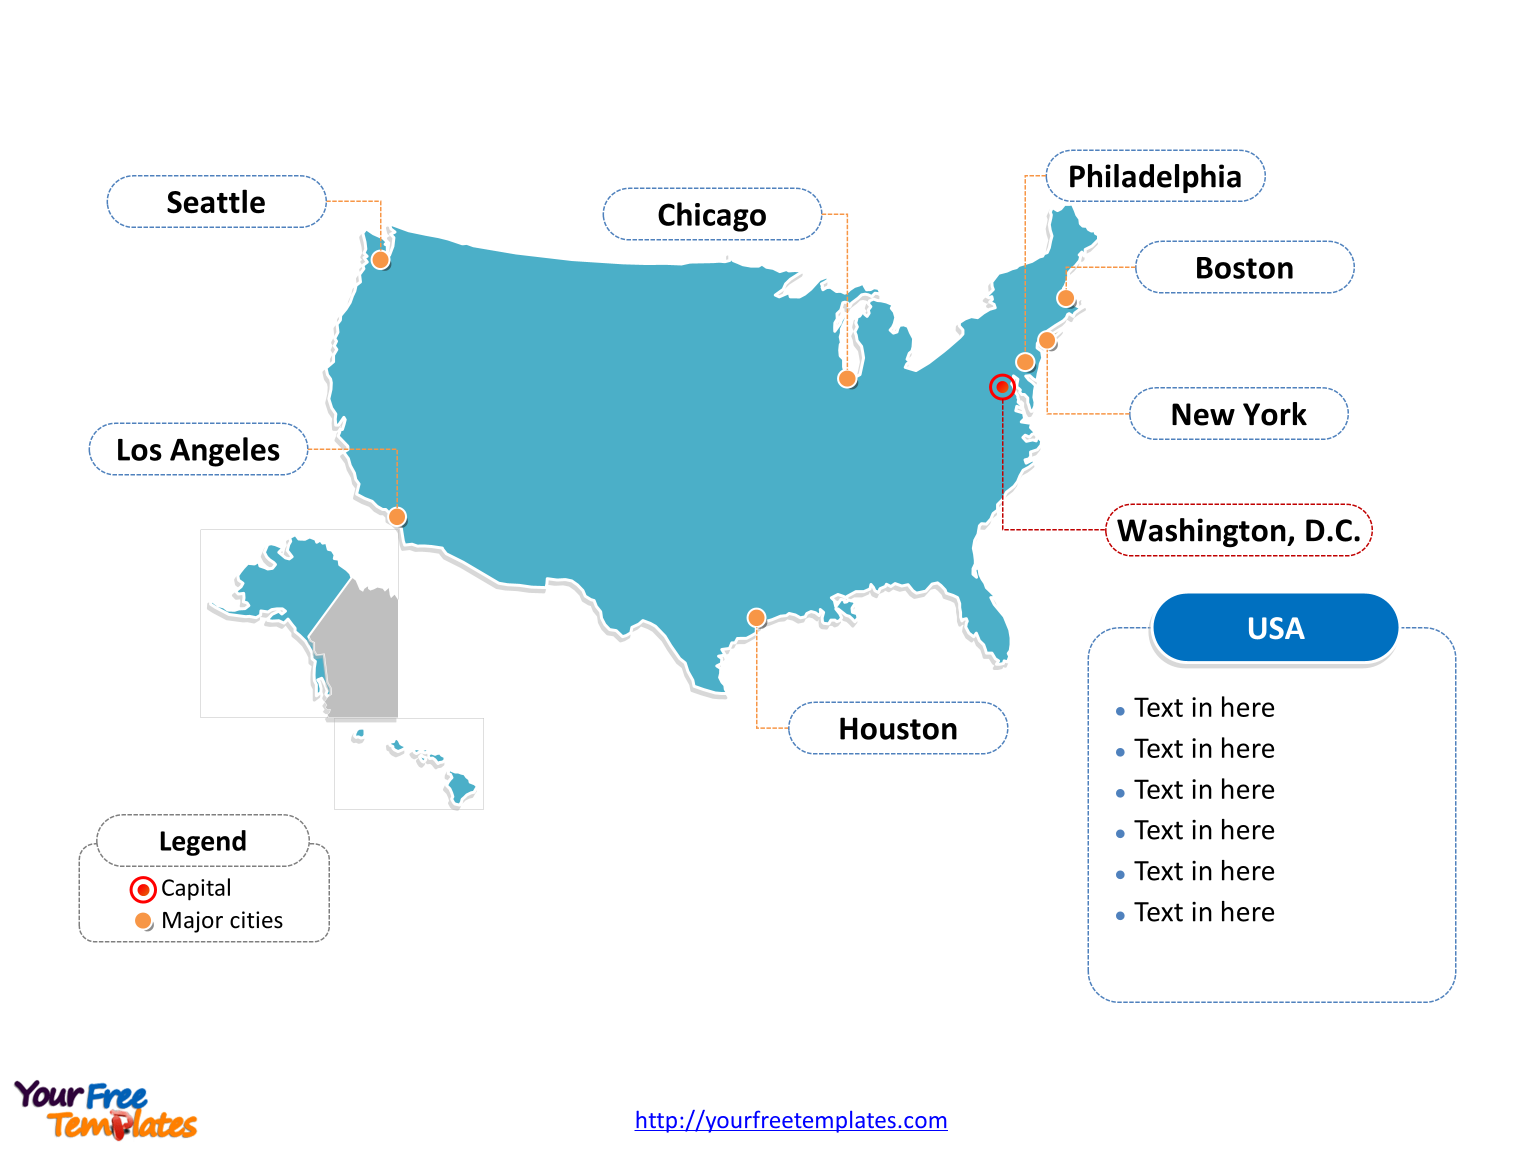 Free USA PowerPoint Map Free PowerPoint Templates - Editable us map for powerpoint free